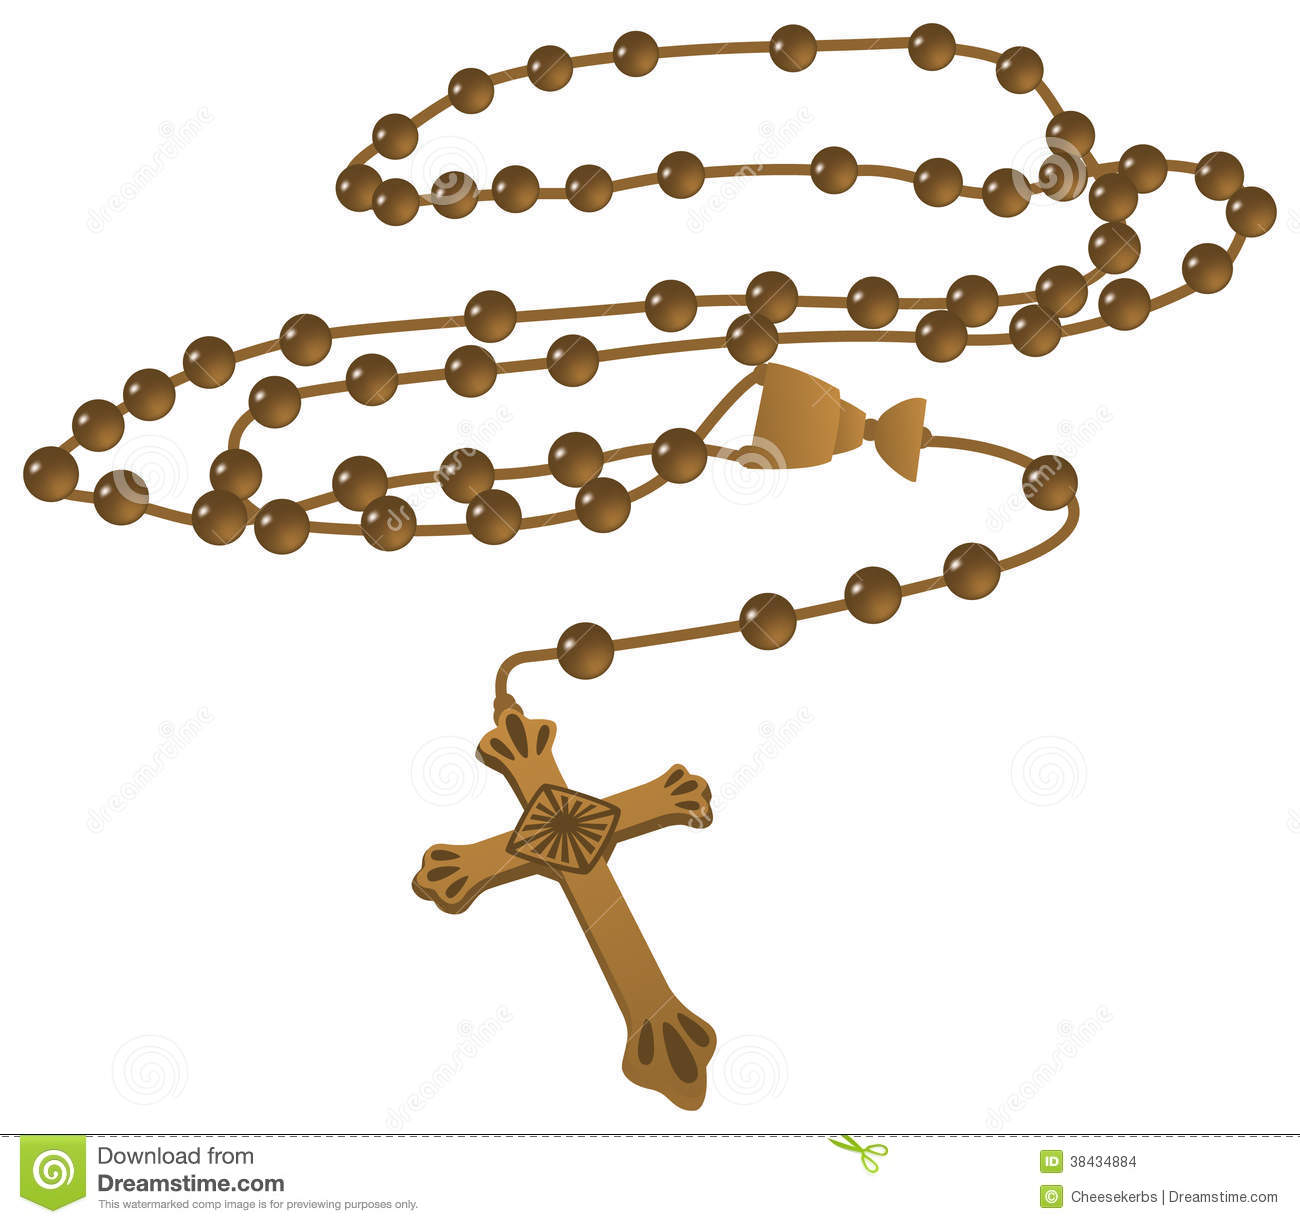 Elegant Brown Catholic Rosary Vector isolated on a white background.